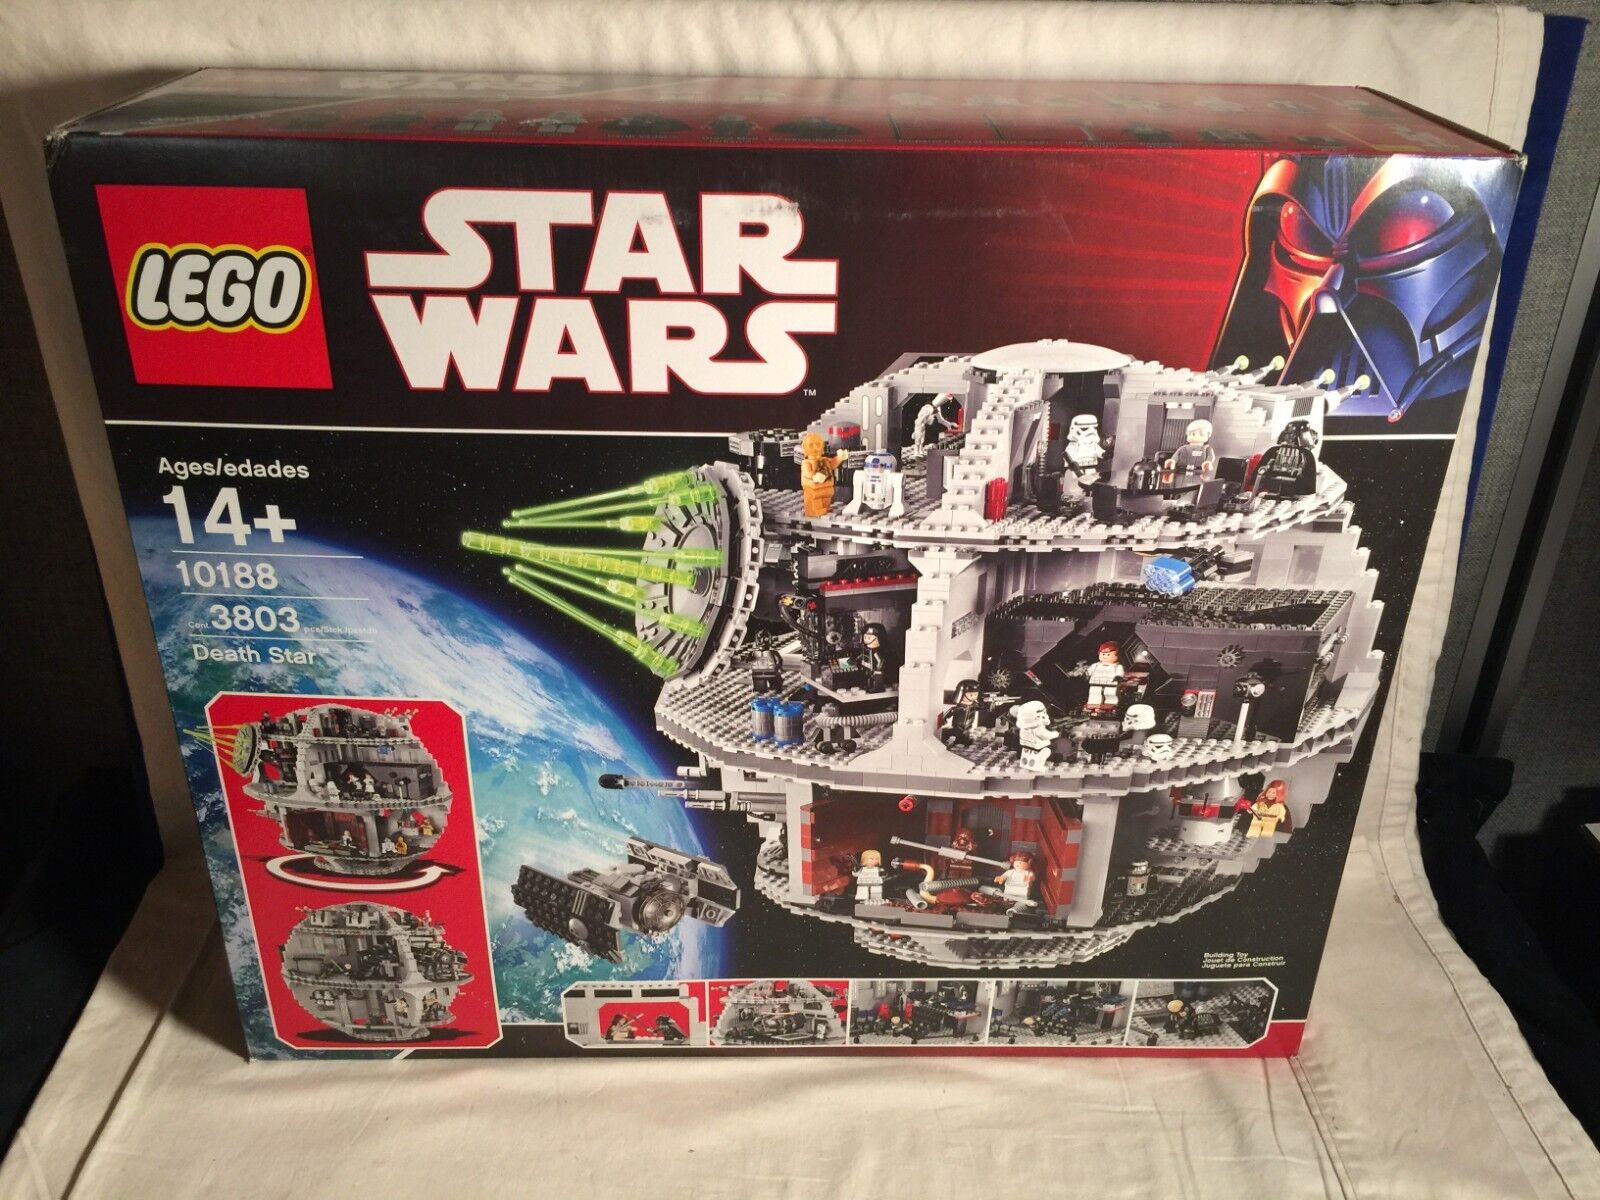 Star Wars Lego 10188 DEATH STAR 3803pc NEW SEALED + + + 25 Mini Figures SHIPPING BOX 07d4c6